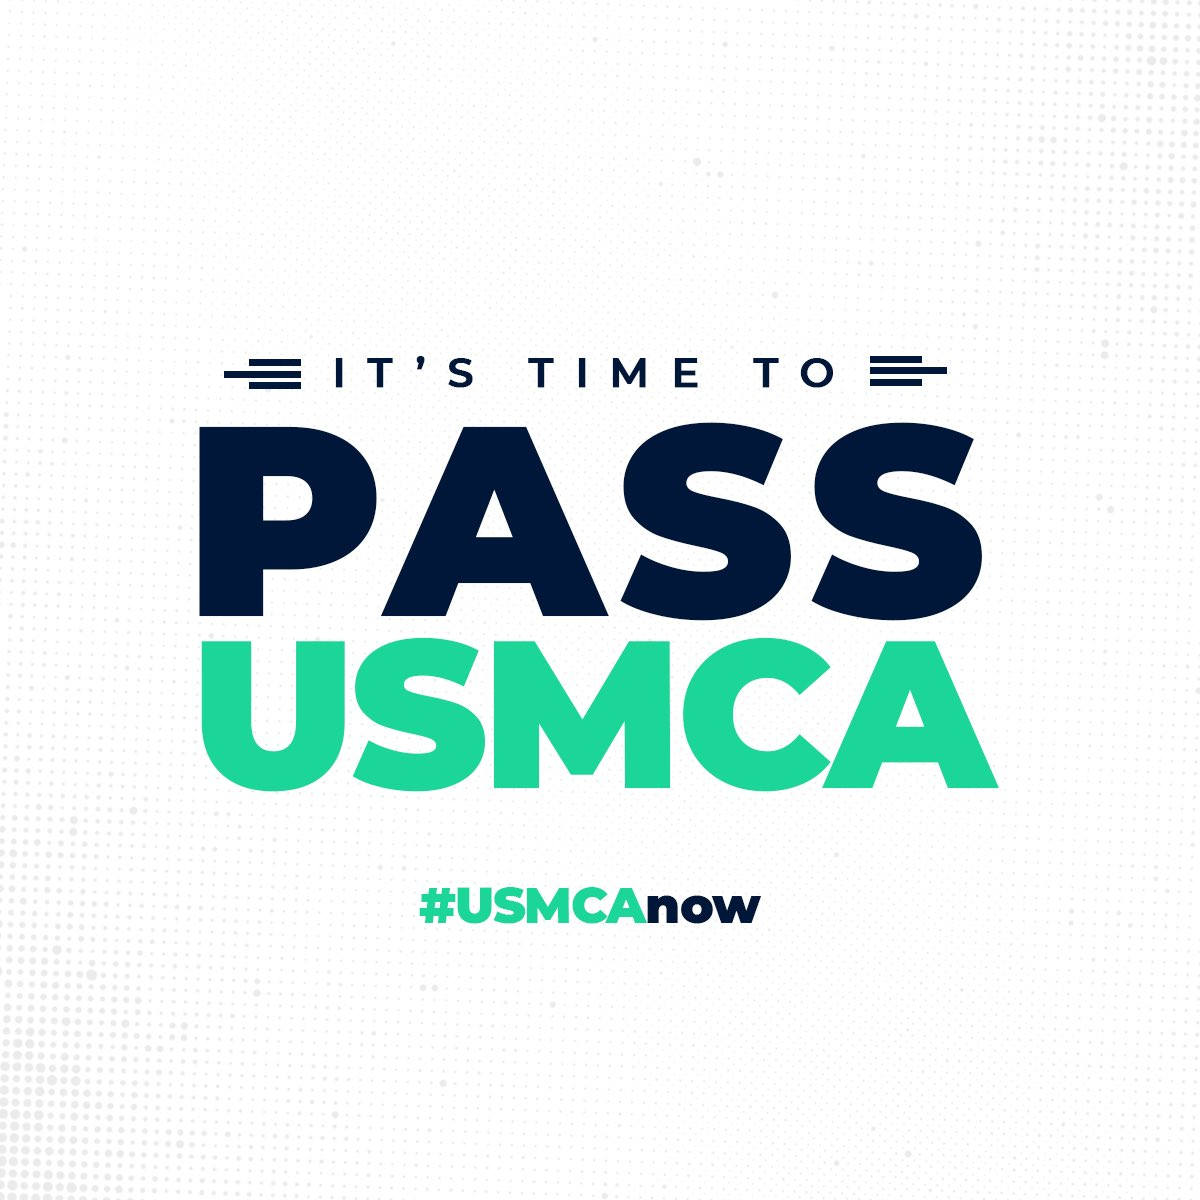 It's been over 1️⃣ year since @realDonaldTrump signed the #USMCA. Iowans from every corner of our state want to see this trade deal get done. @SpeakerPelosi needs to move on it and pass the #USMCAnow.